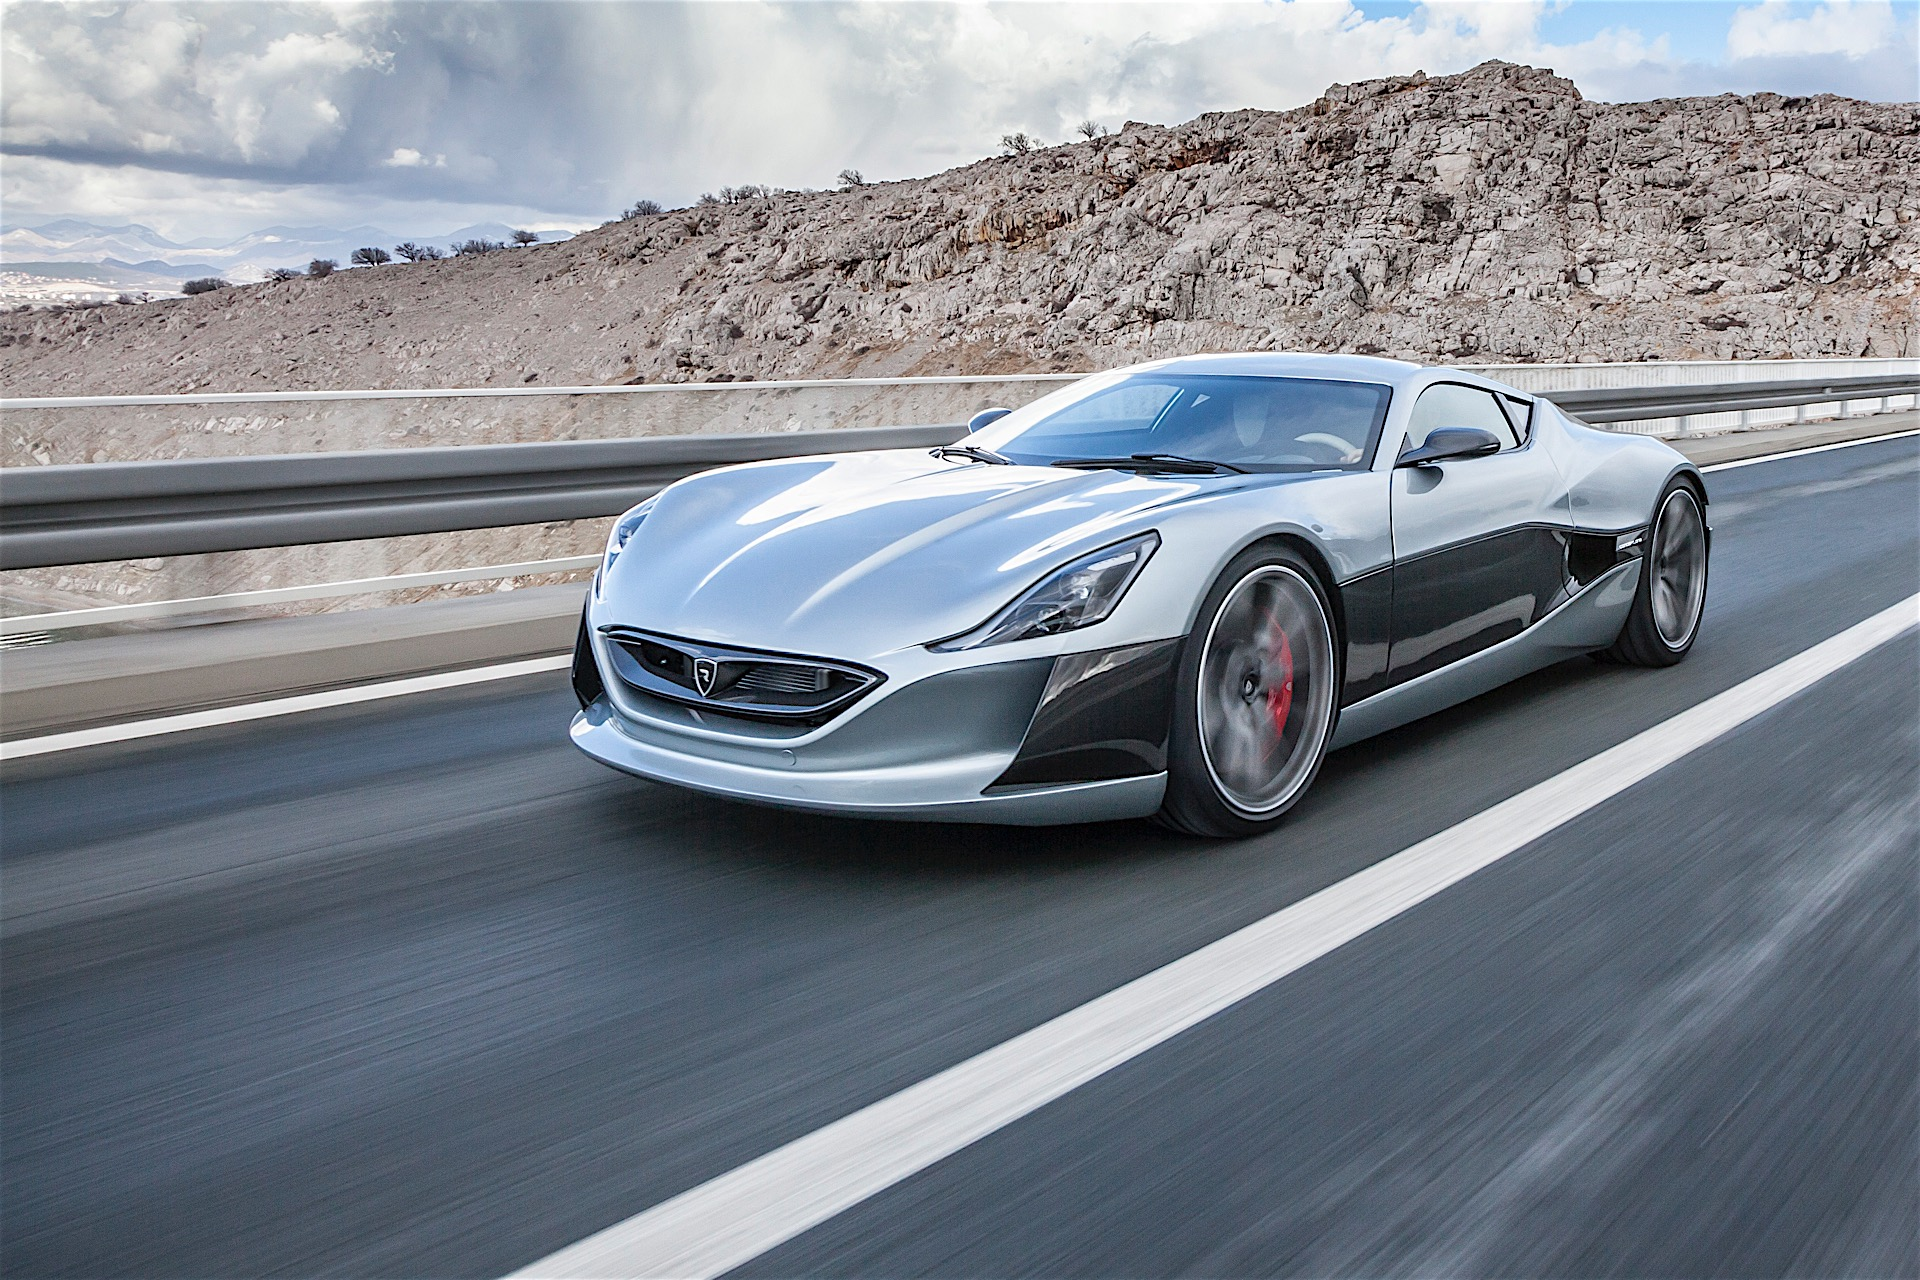 Rimac Concept One World S First Electric Hypercar Revealed In Production Guise